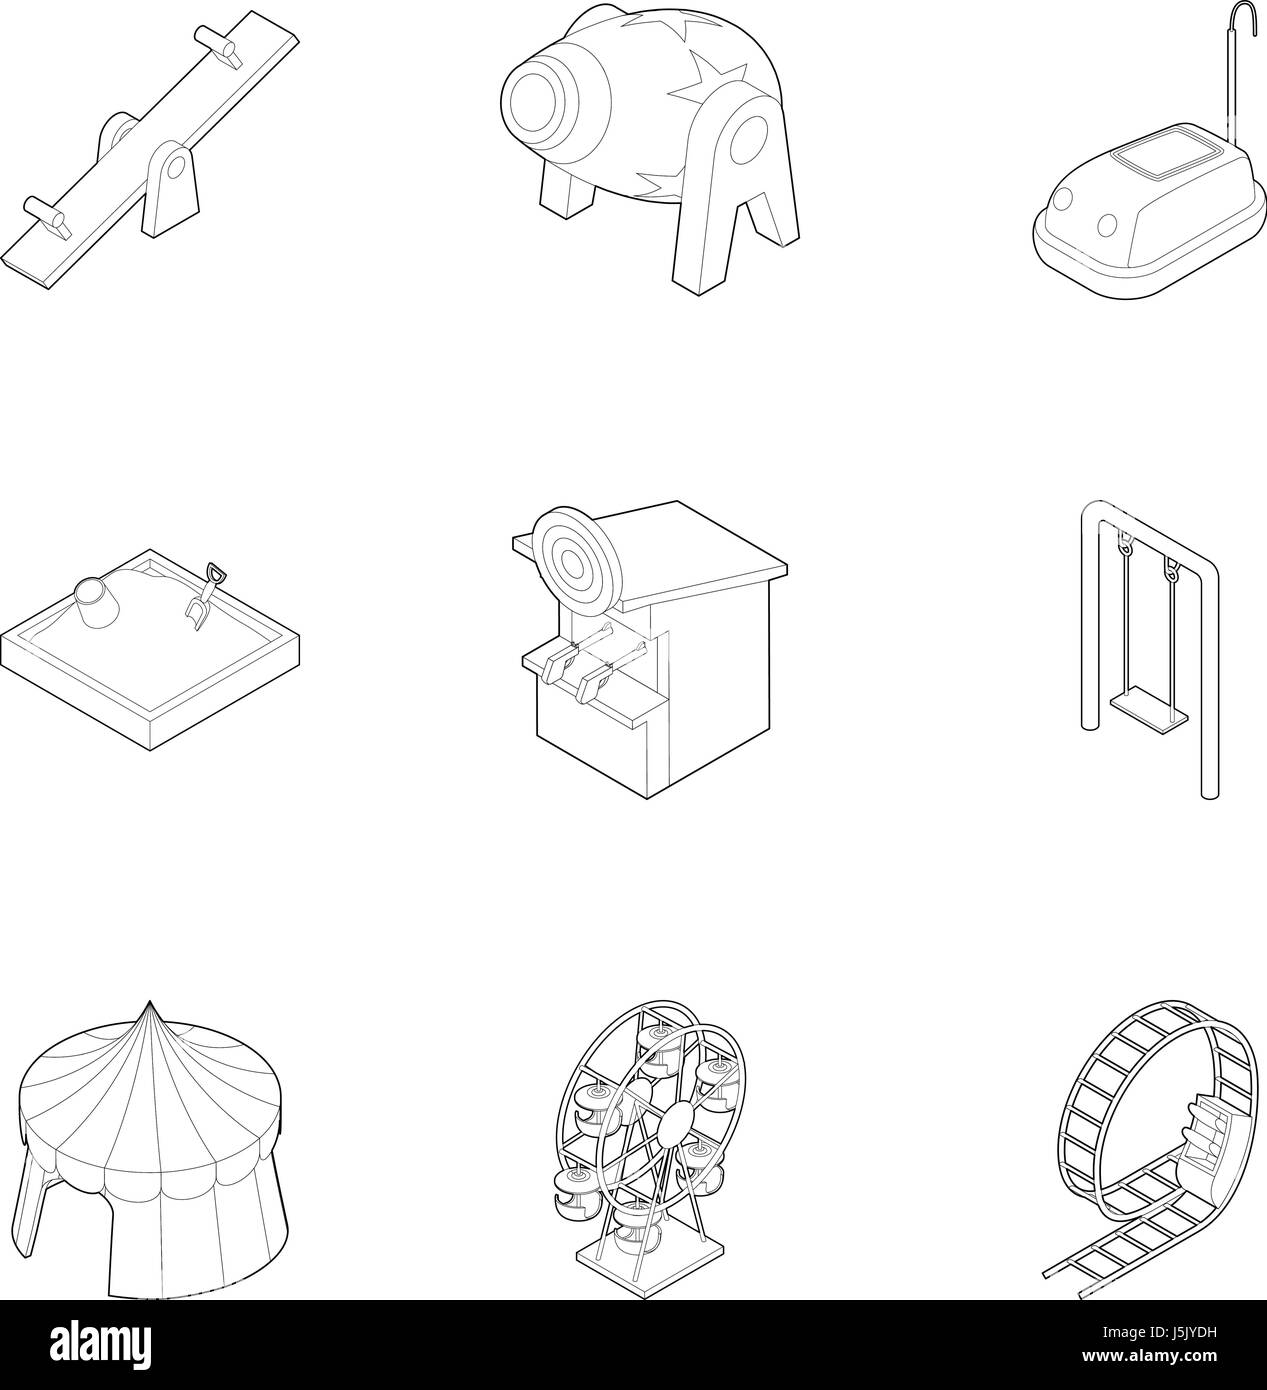 Roller Coaster Children Black And White Stock Photos Images Alamy Rollercoaster Diagram Games Icons Set Outline Style Image